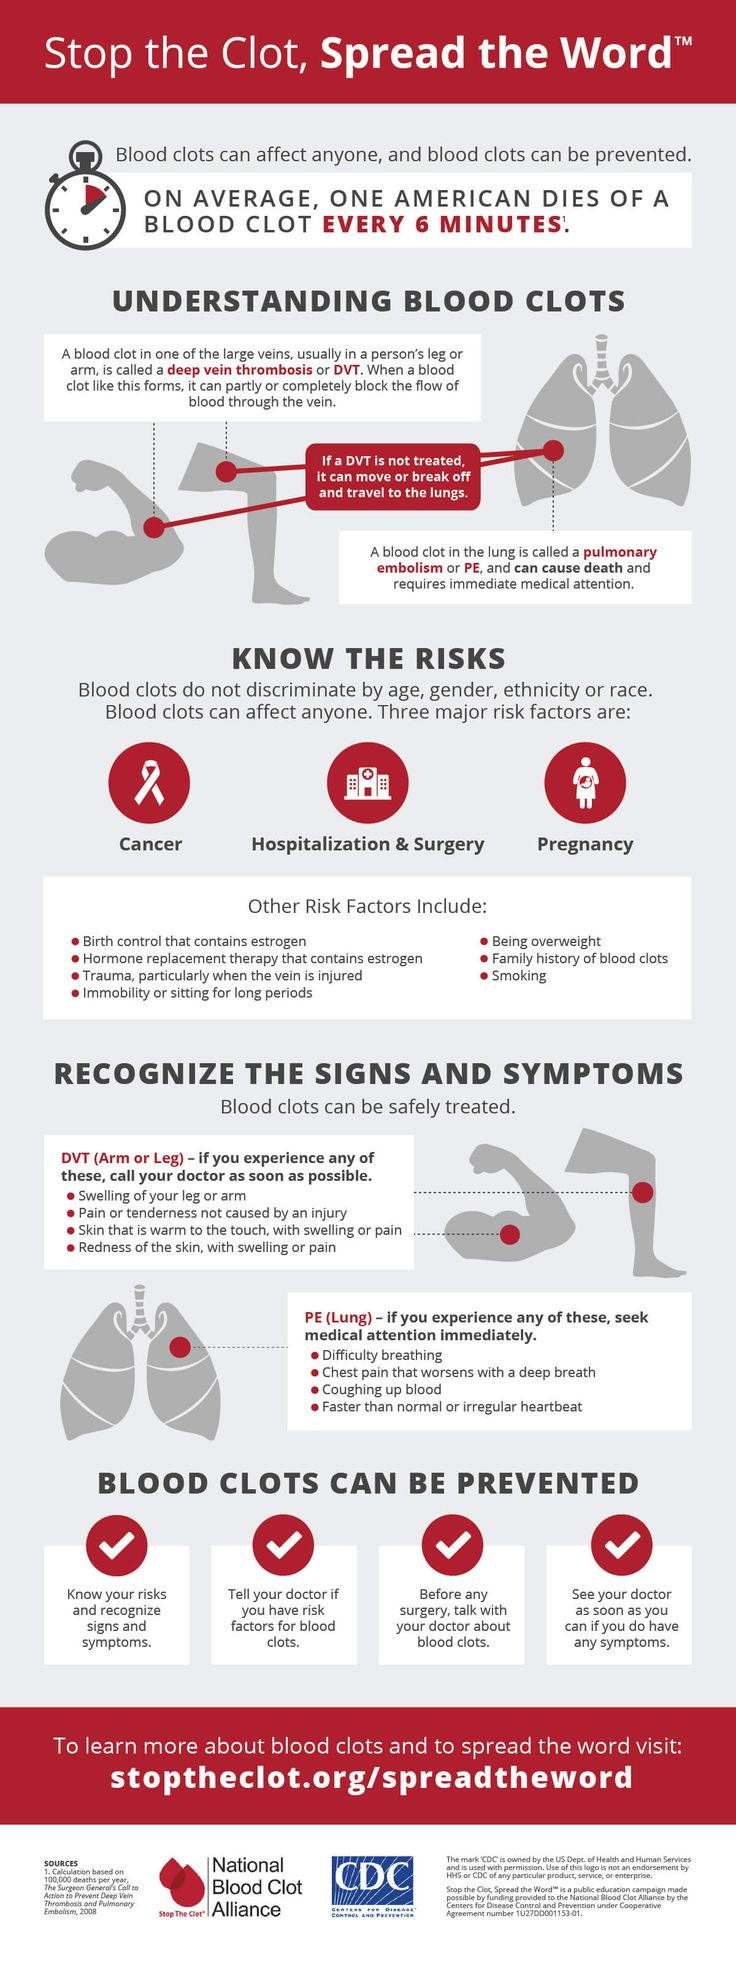 I am naturally at risk because I have APS, and my blood cots too easily. Please share this it can save lives to those who are undiagnosed or suffer from these symptoms out of nowhere. Thank you.